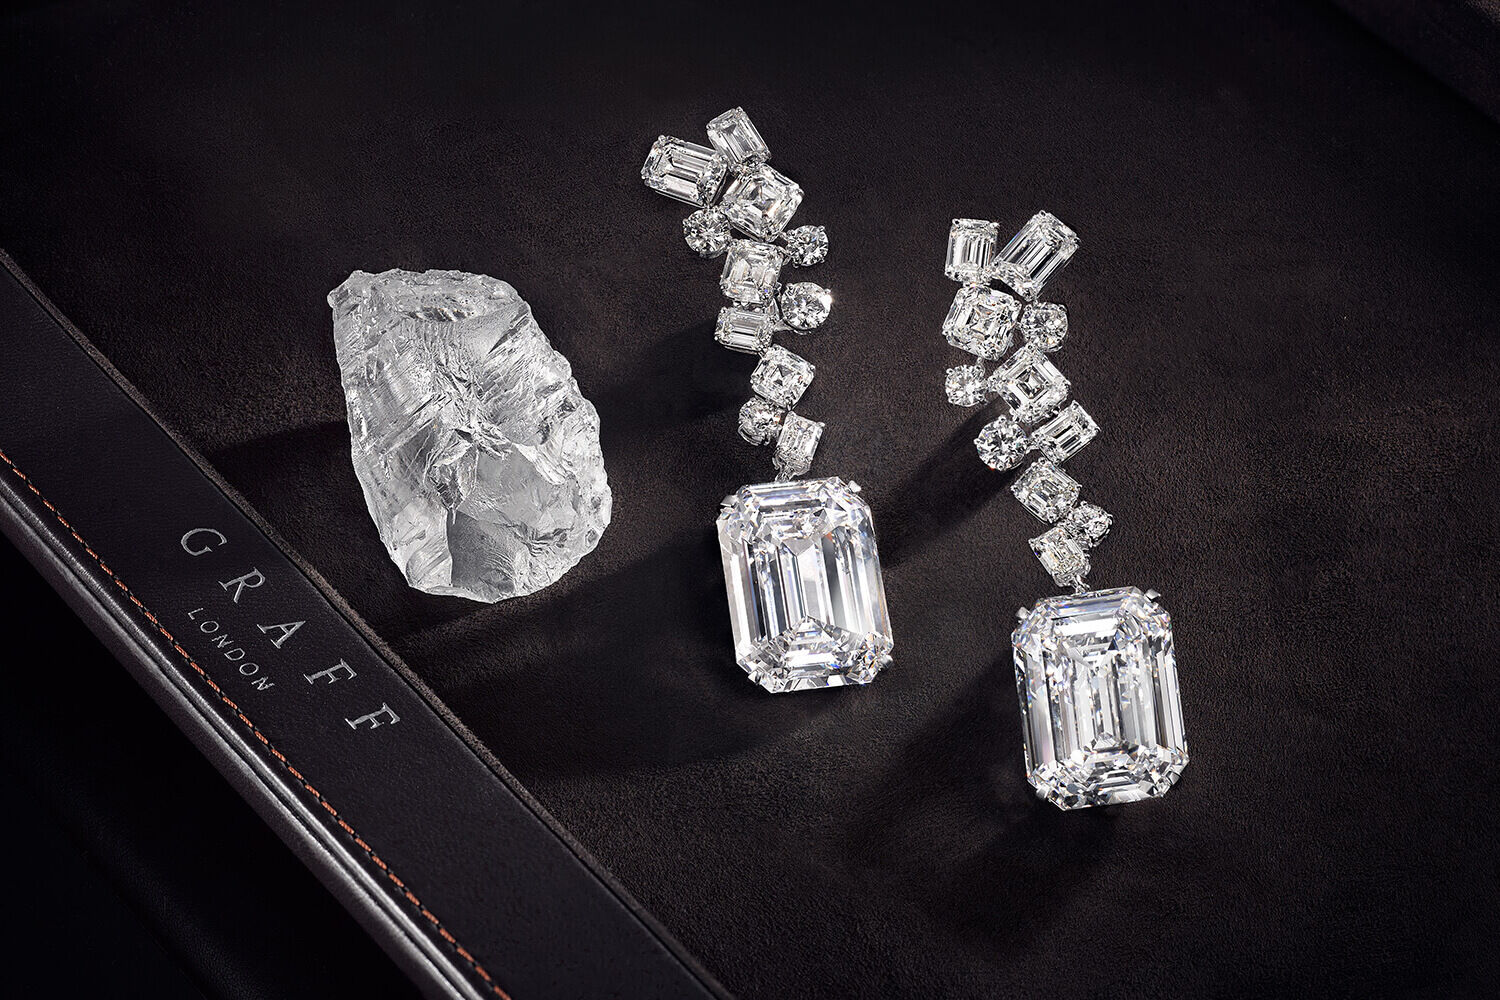 The Graff Eternal Twins - two identical D Flawless emerald cut diamonds weighing 50.23 carats each and the rough stone